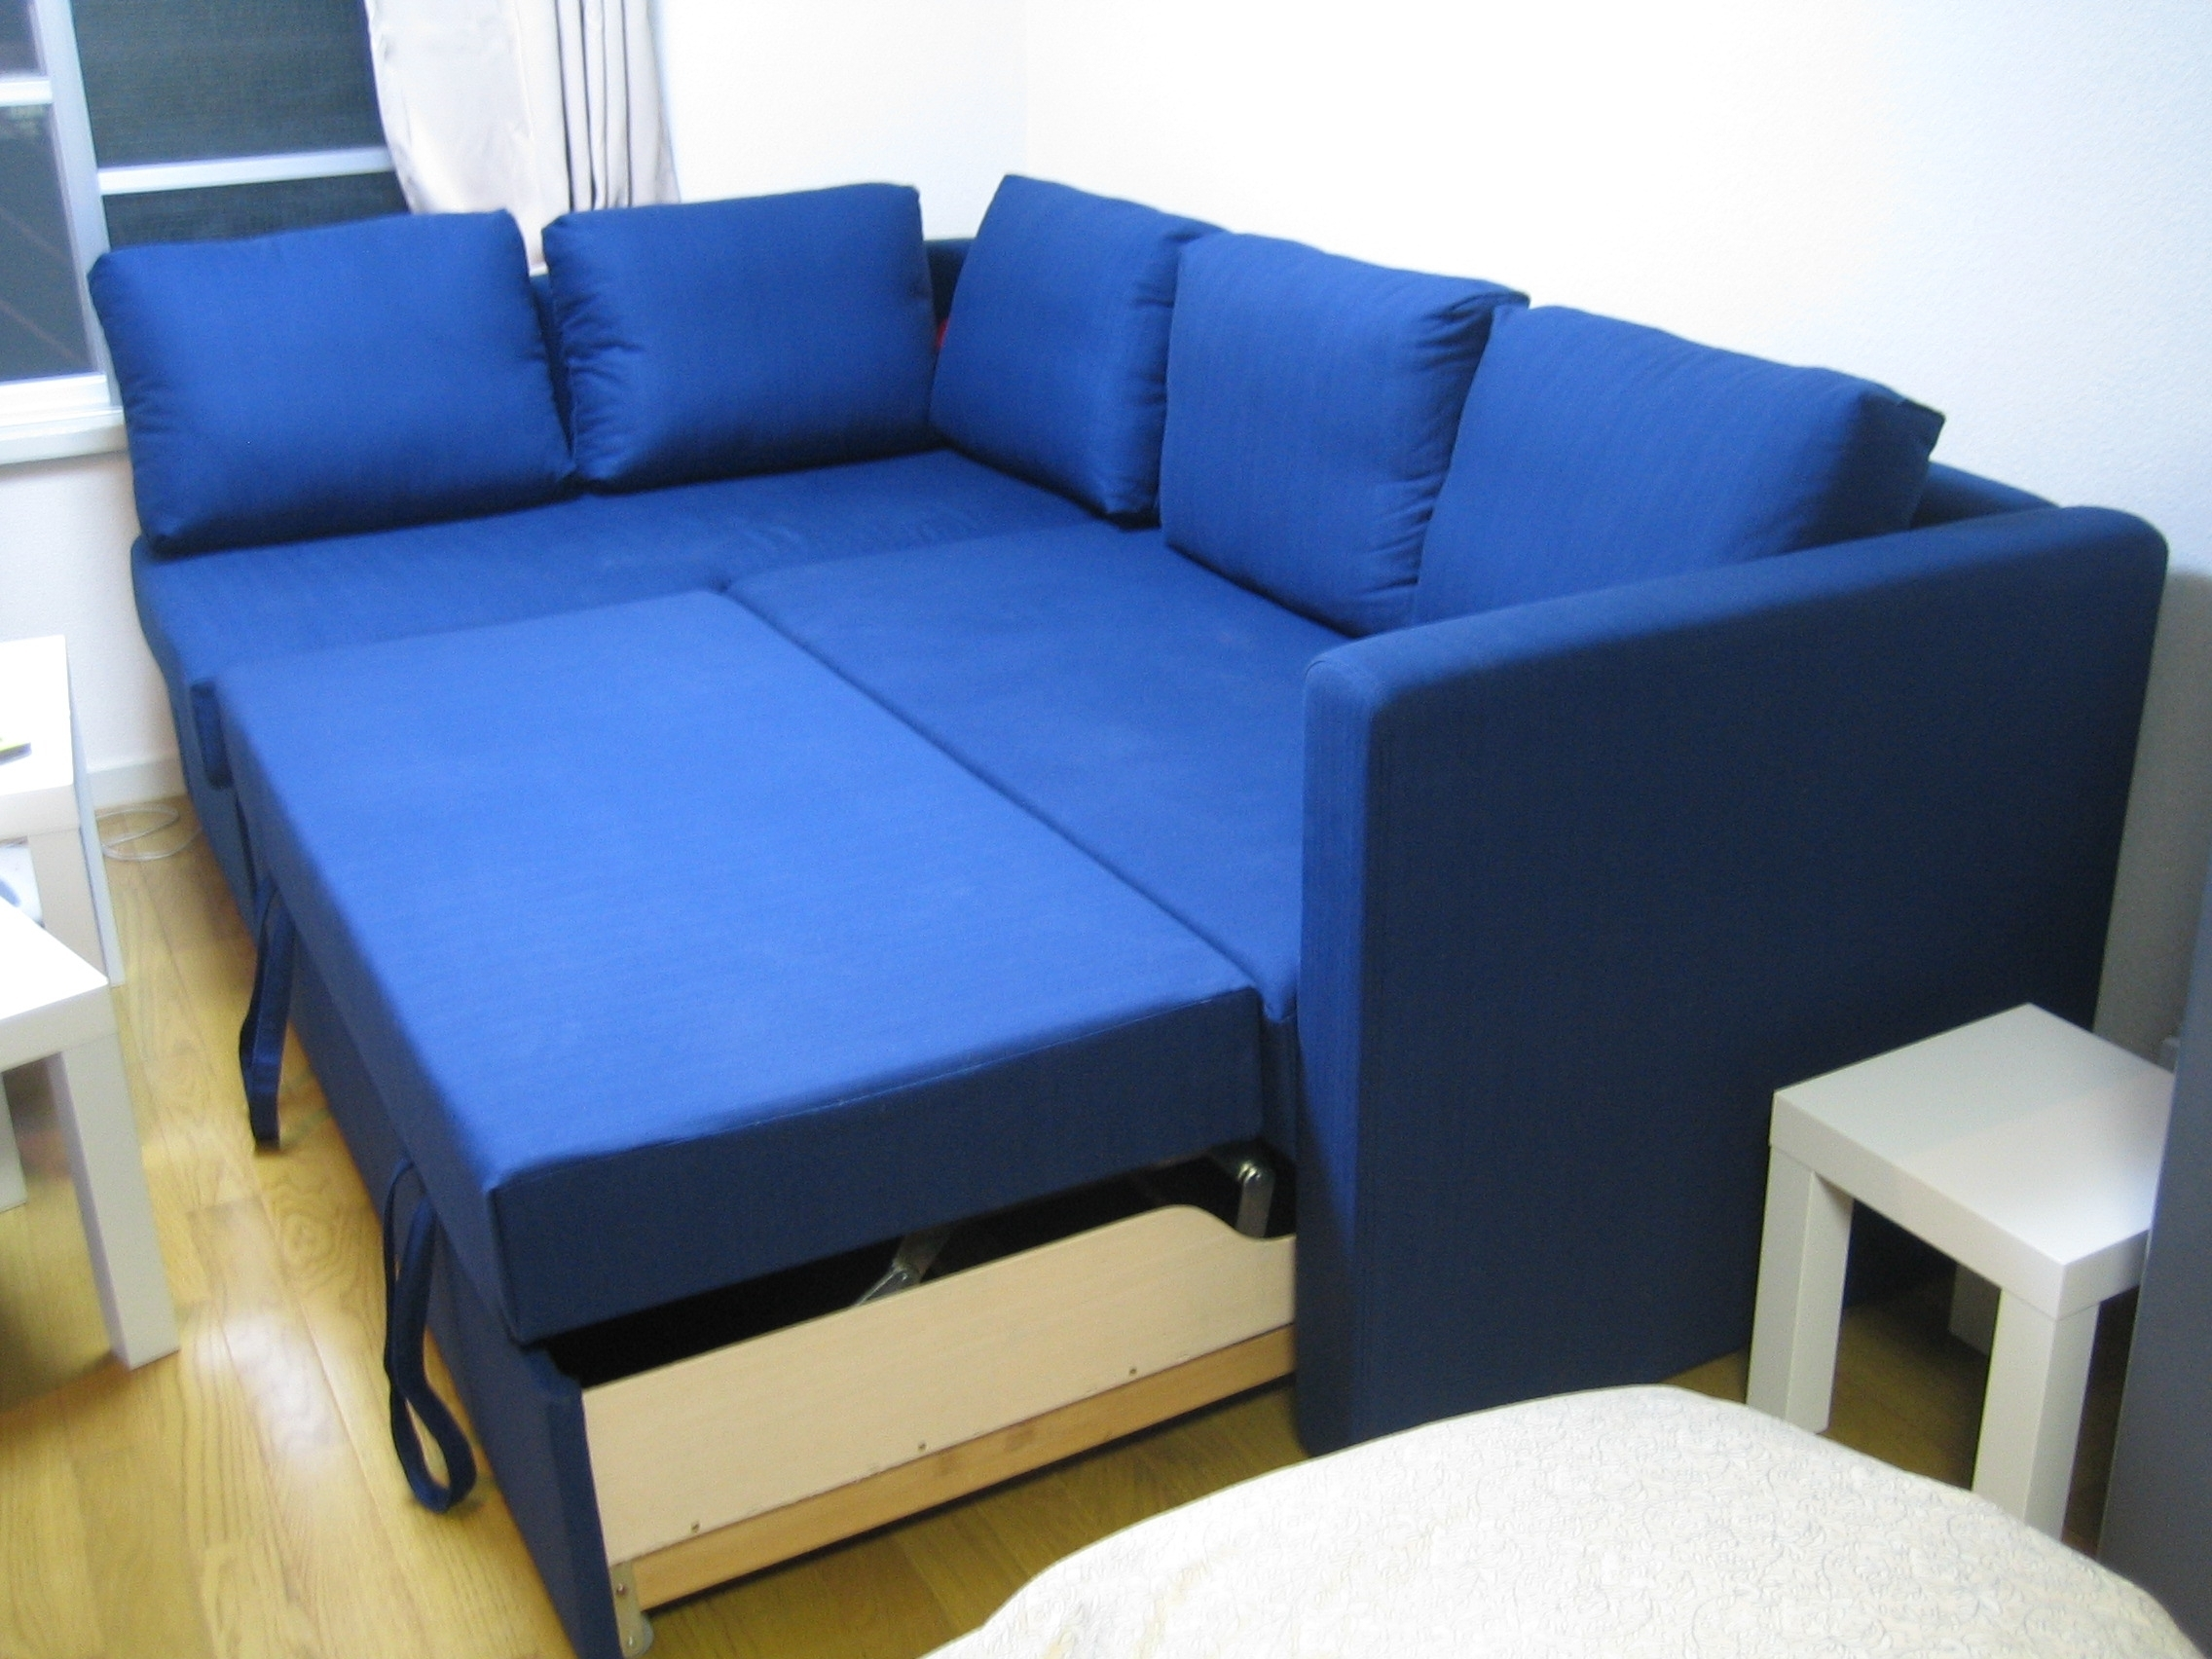 Chair That Turns Into Bed Sofa That Turns Into A Bed Sofas That Turn Into Beds Adrop